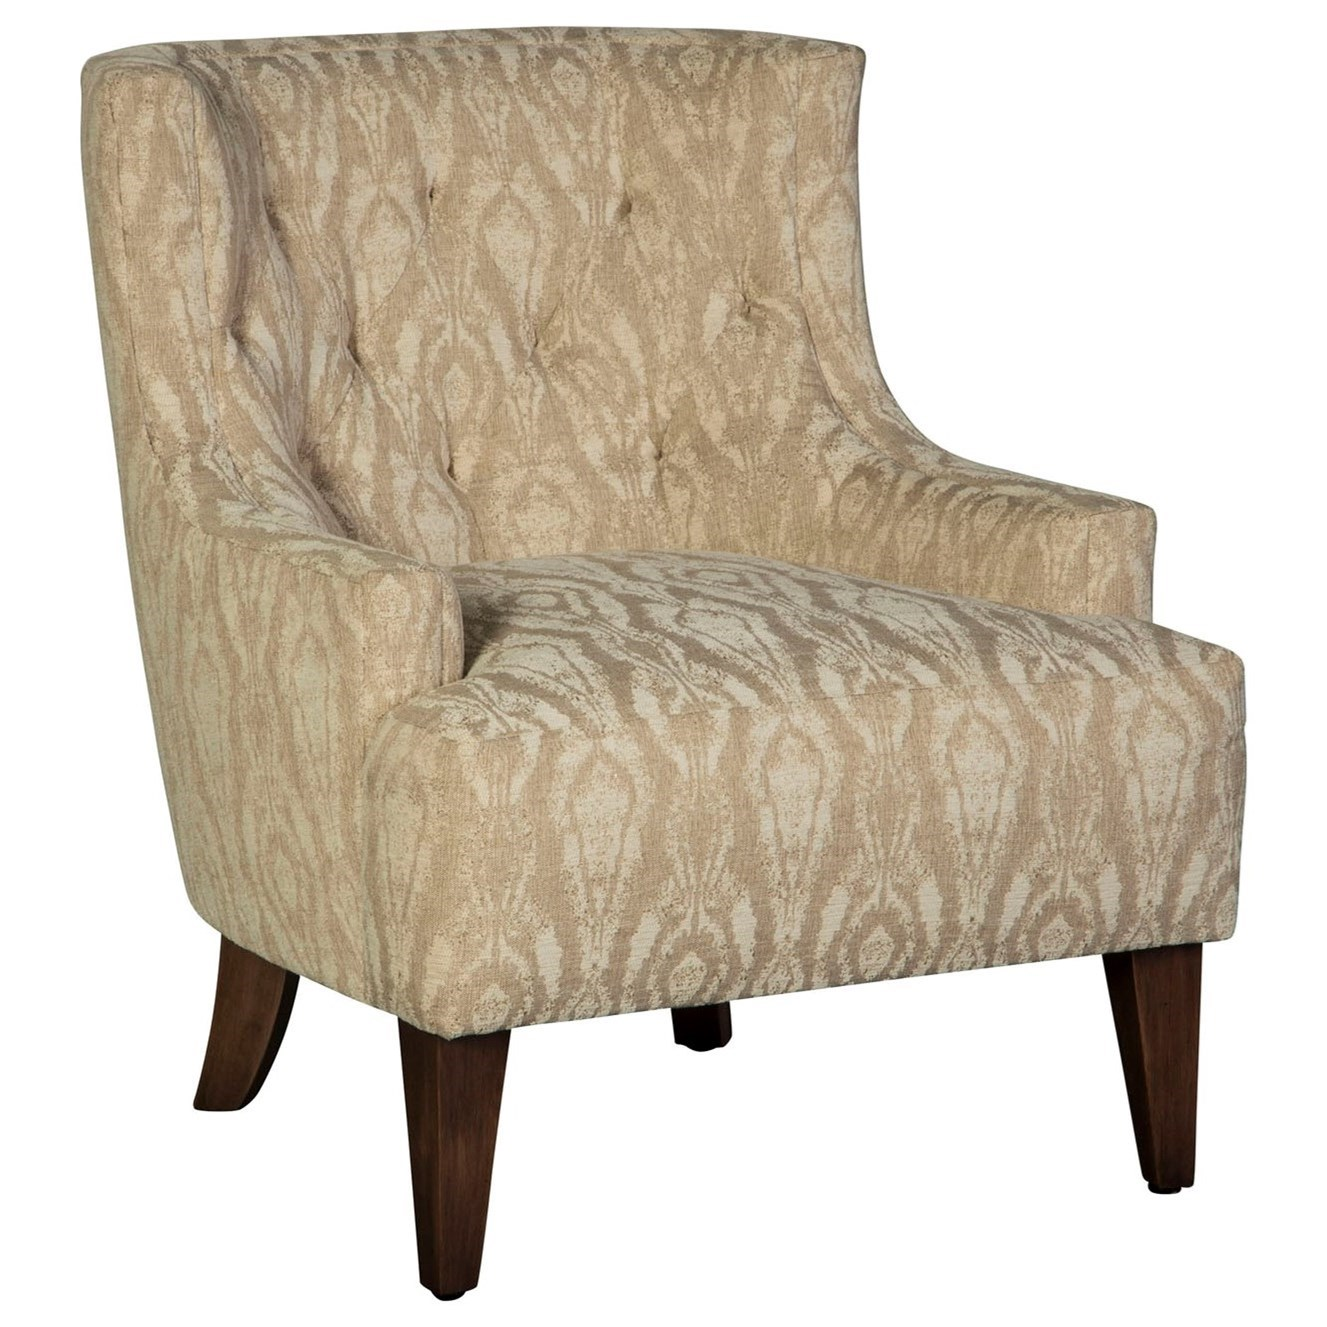 Accentuates Sedona Accent Chair by Jonathan Louis at Fashion Furniture